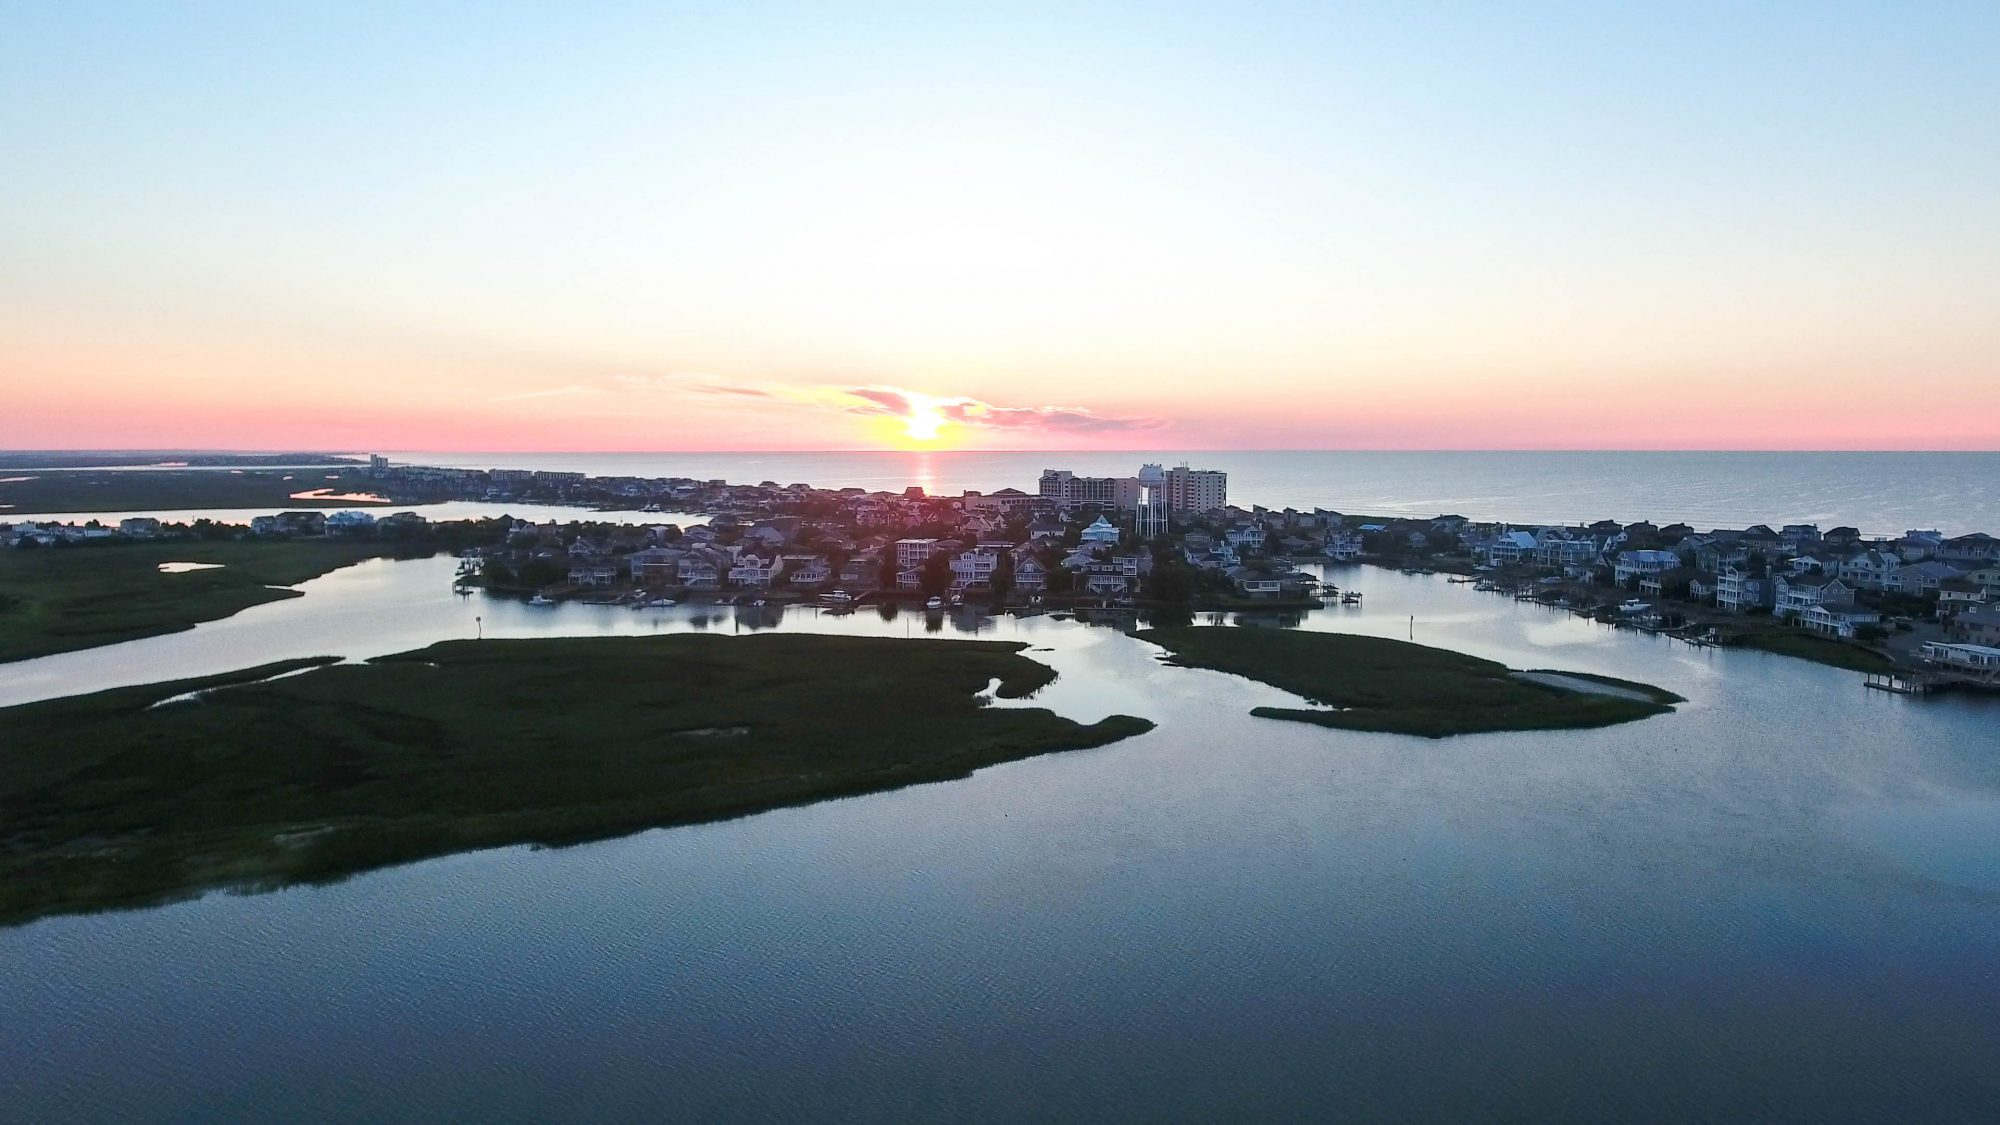 8. Wrightsville Beach, North Carolina